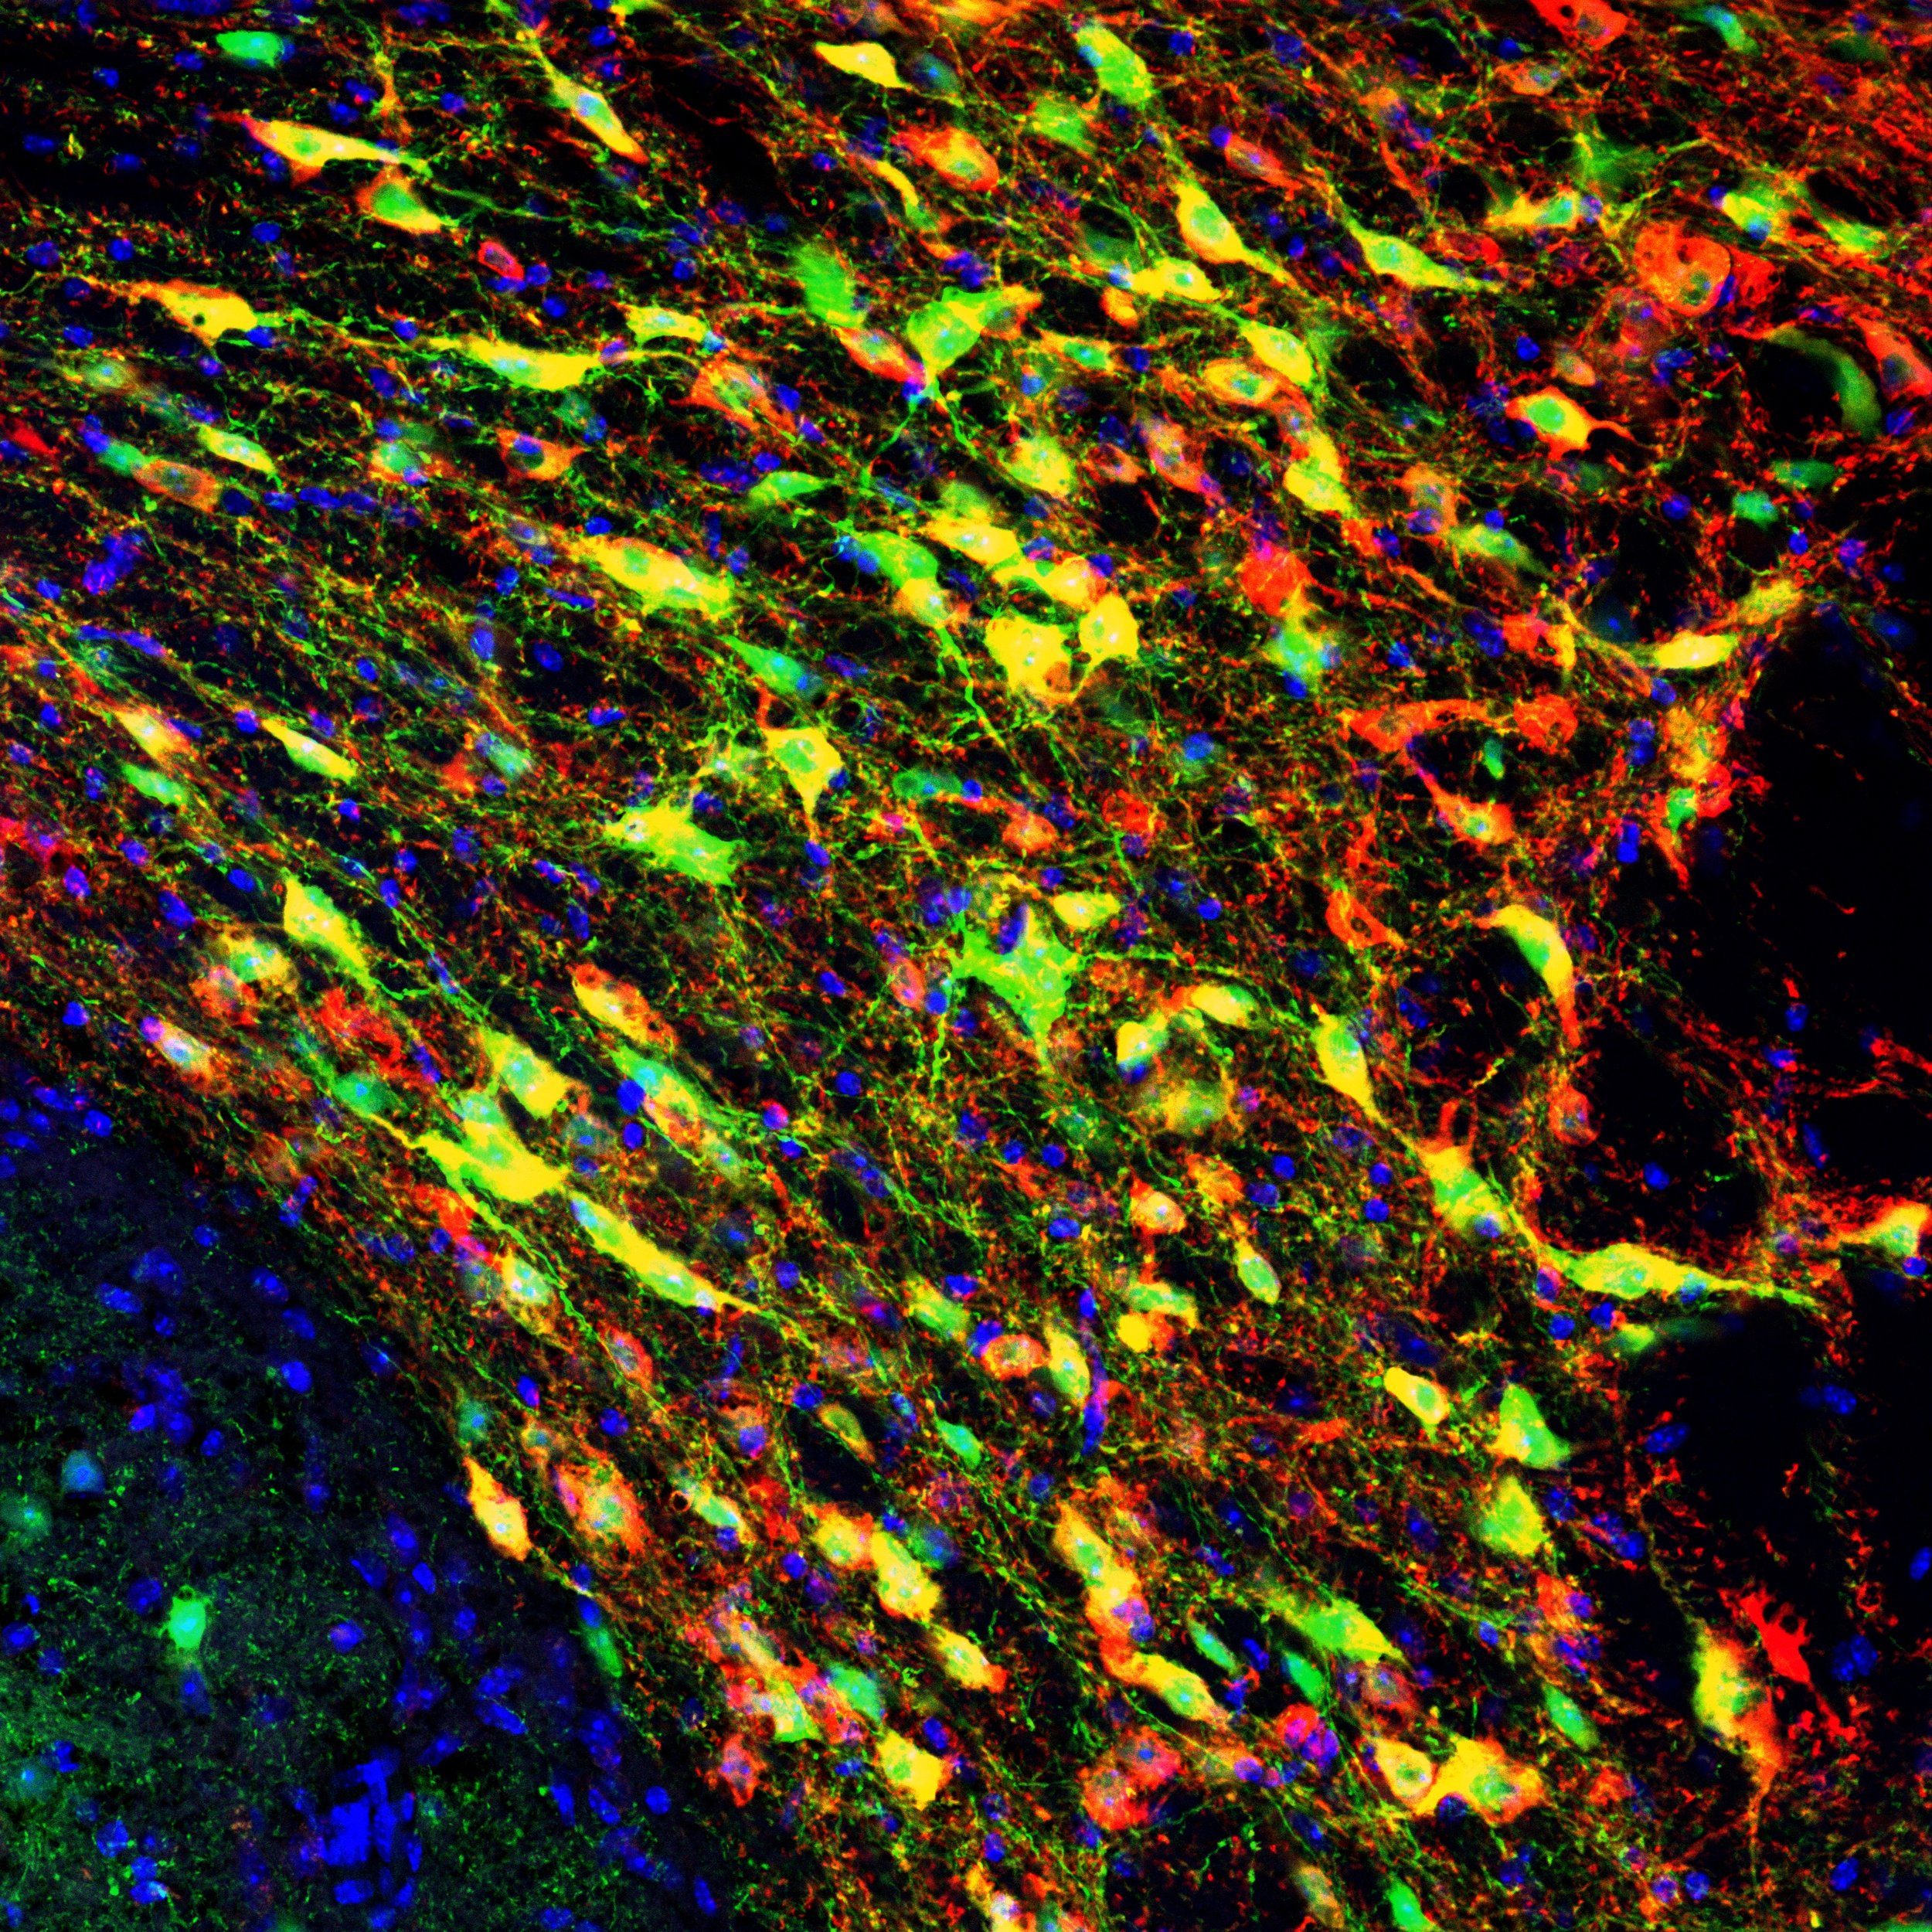 eYFP (green) expression in TH+ neurons (red) of the VTA